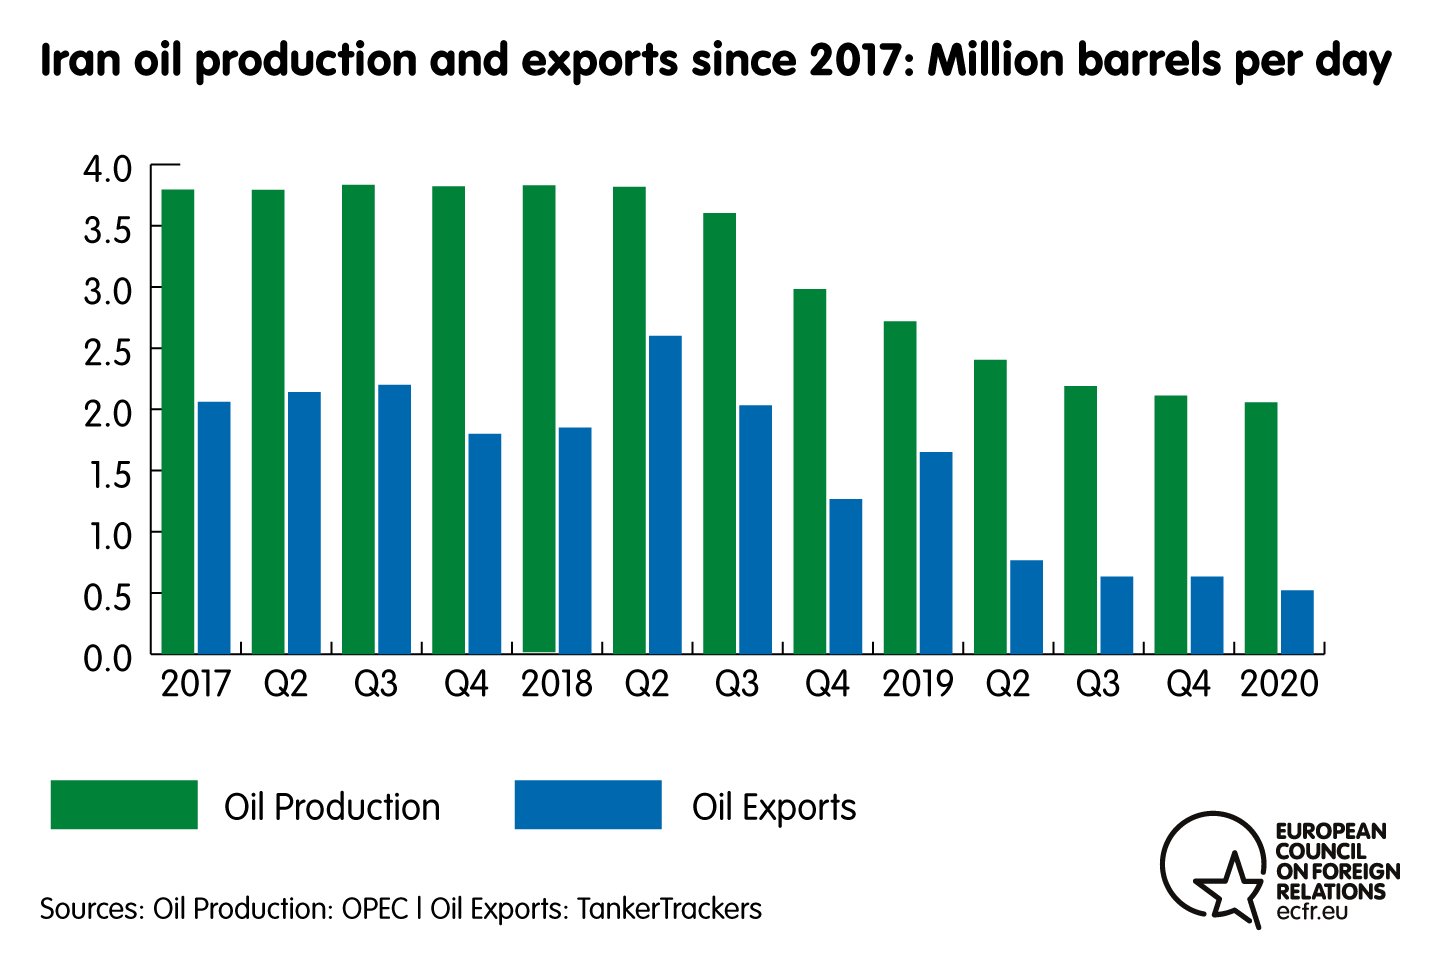 Chart of Iran oil production and exports since 2017 in million barrels per day